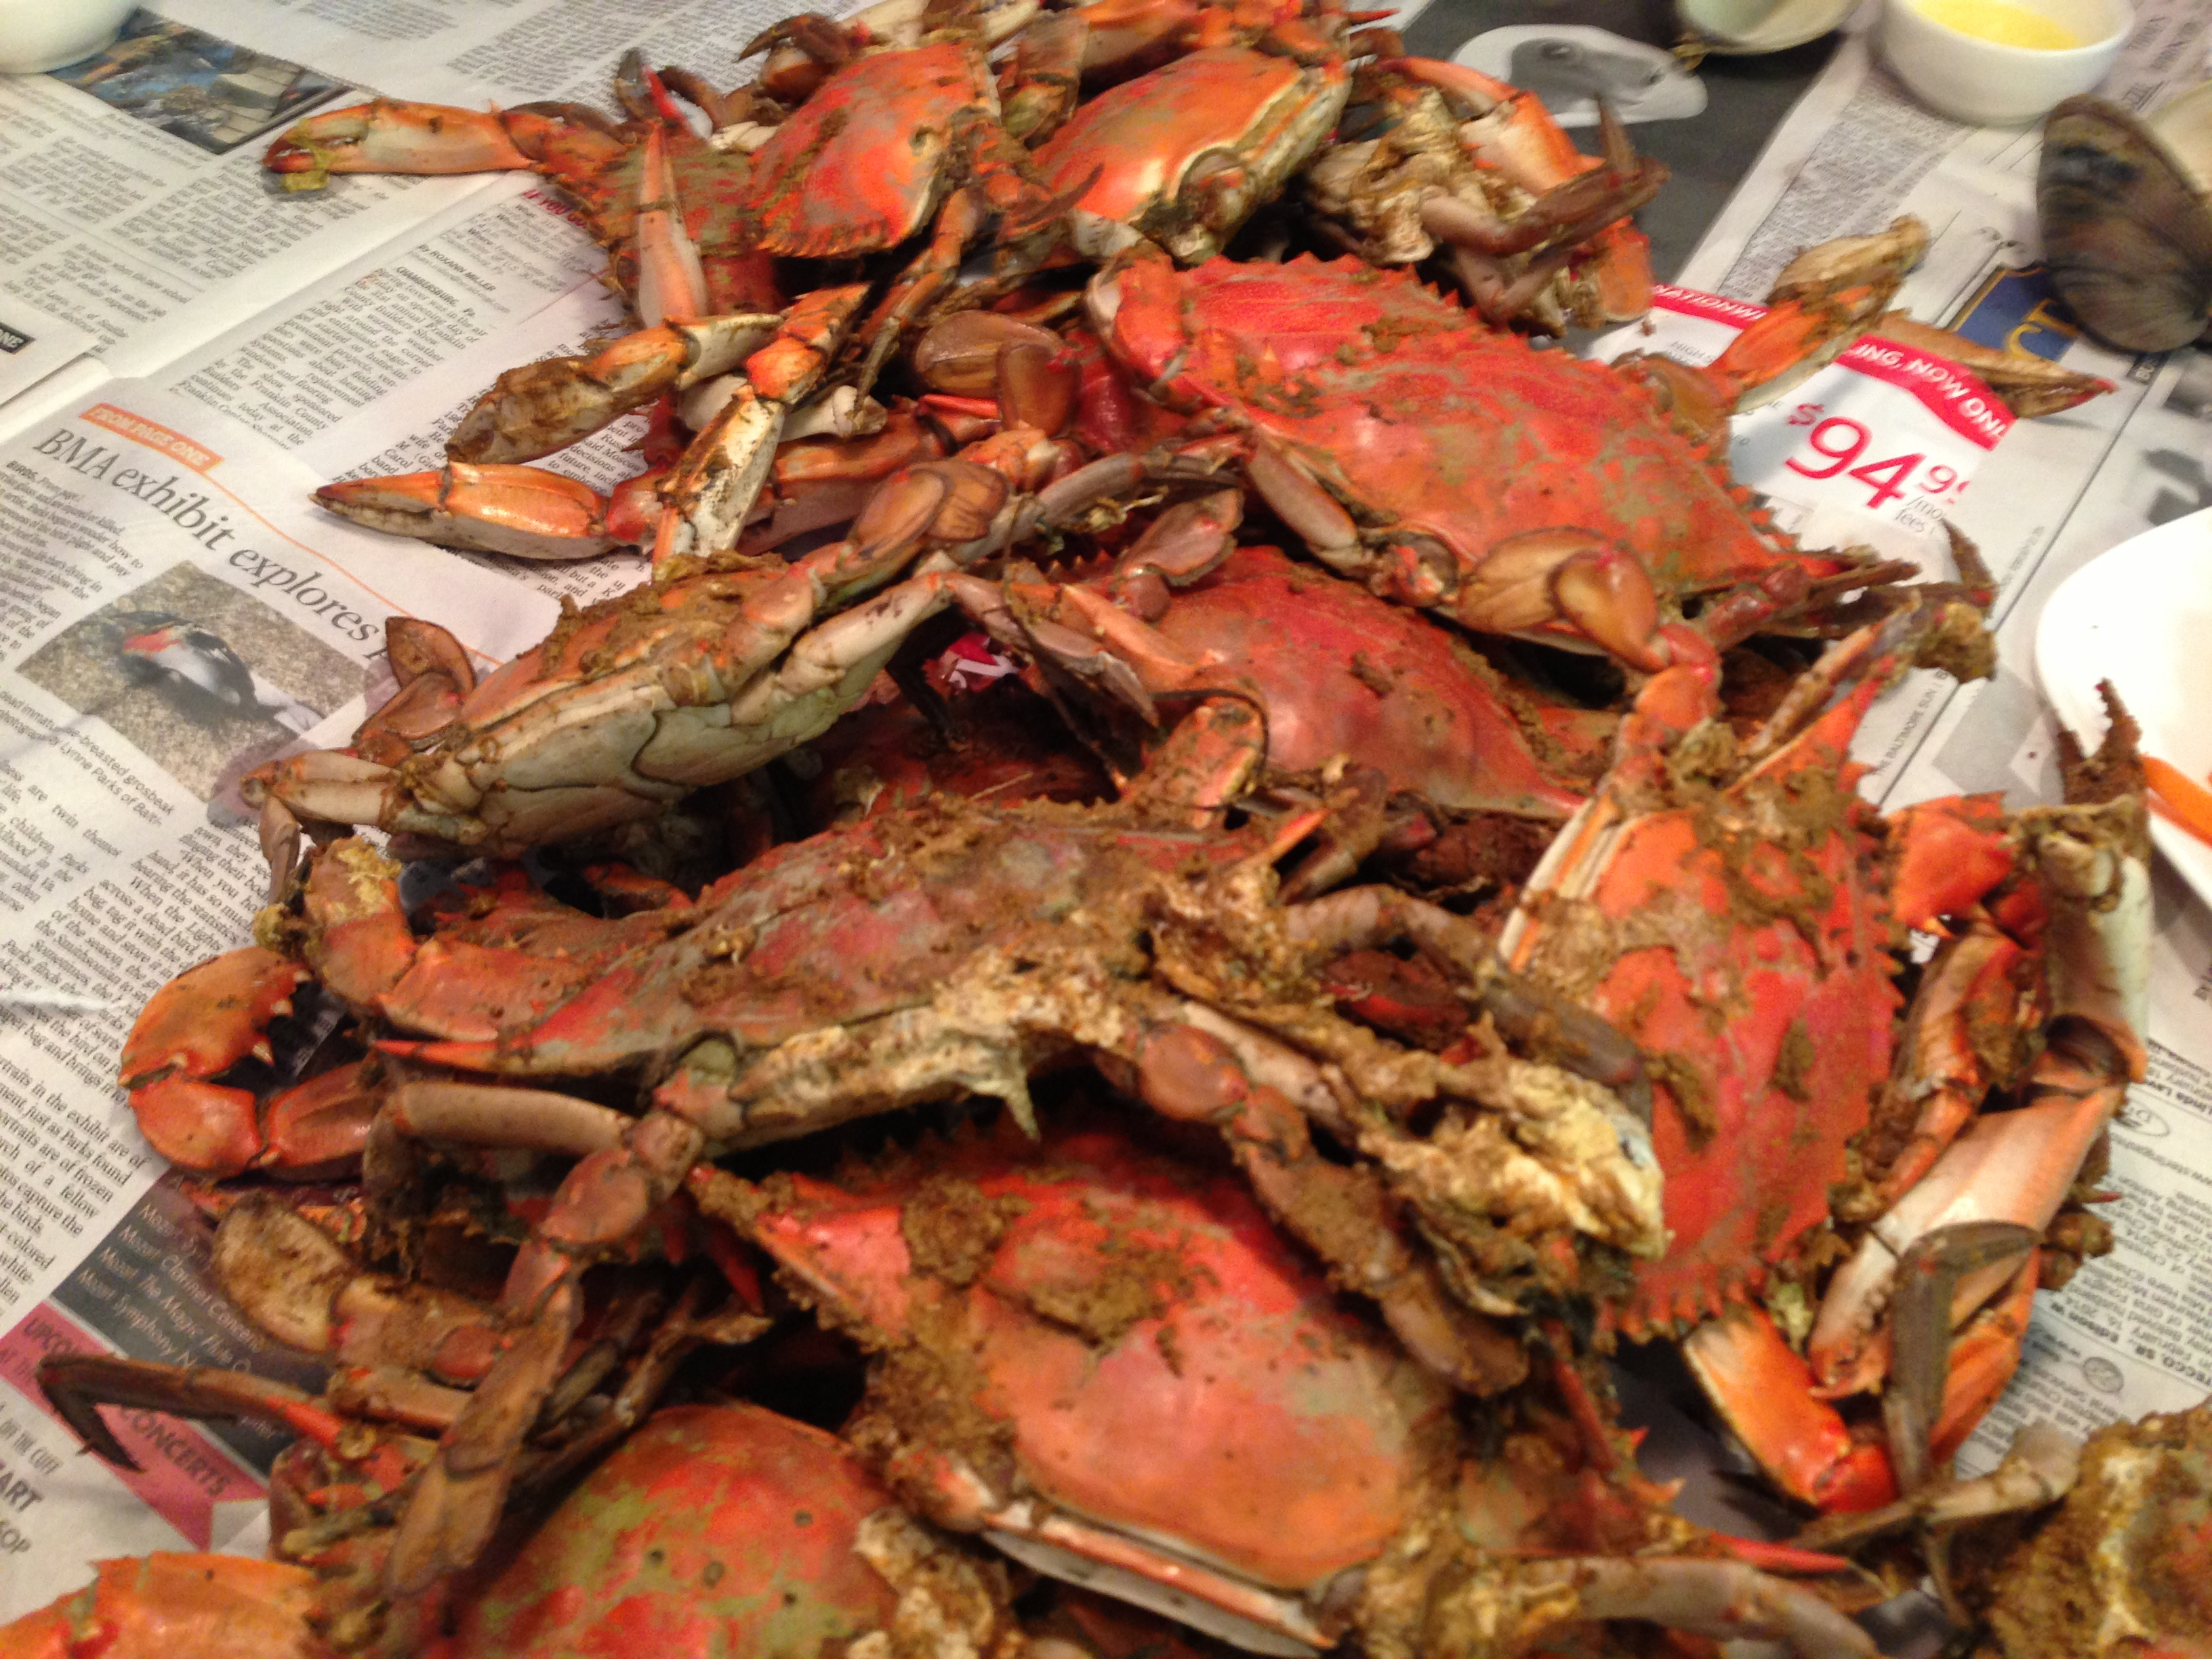 Steamed Blue Crab Big daddys recipes steamed maryland blue crabs